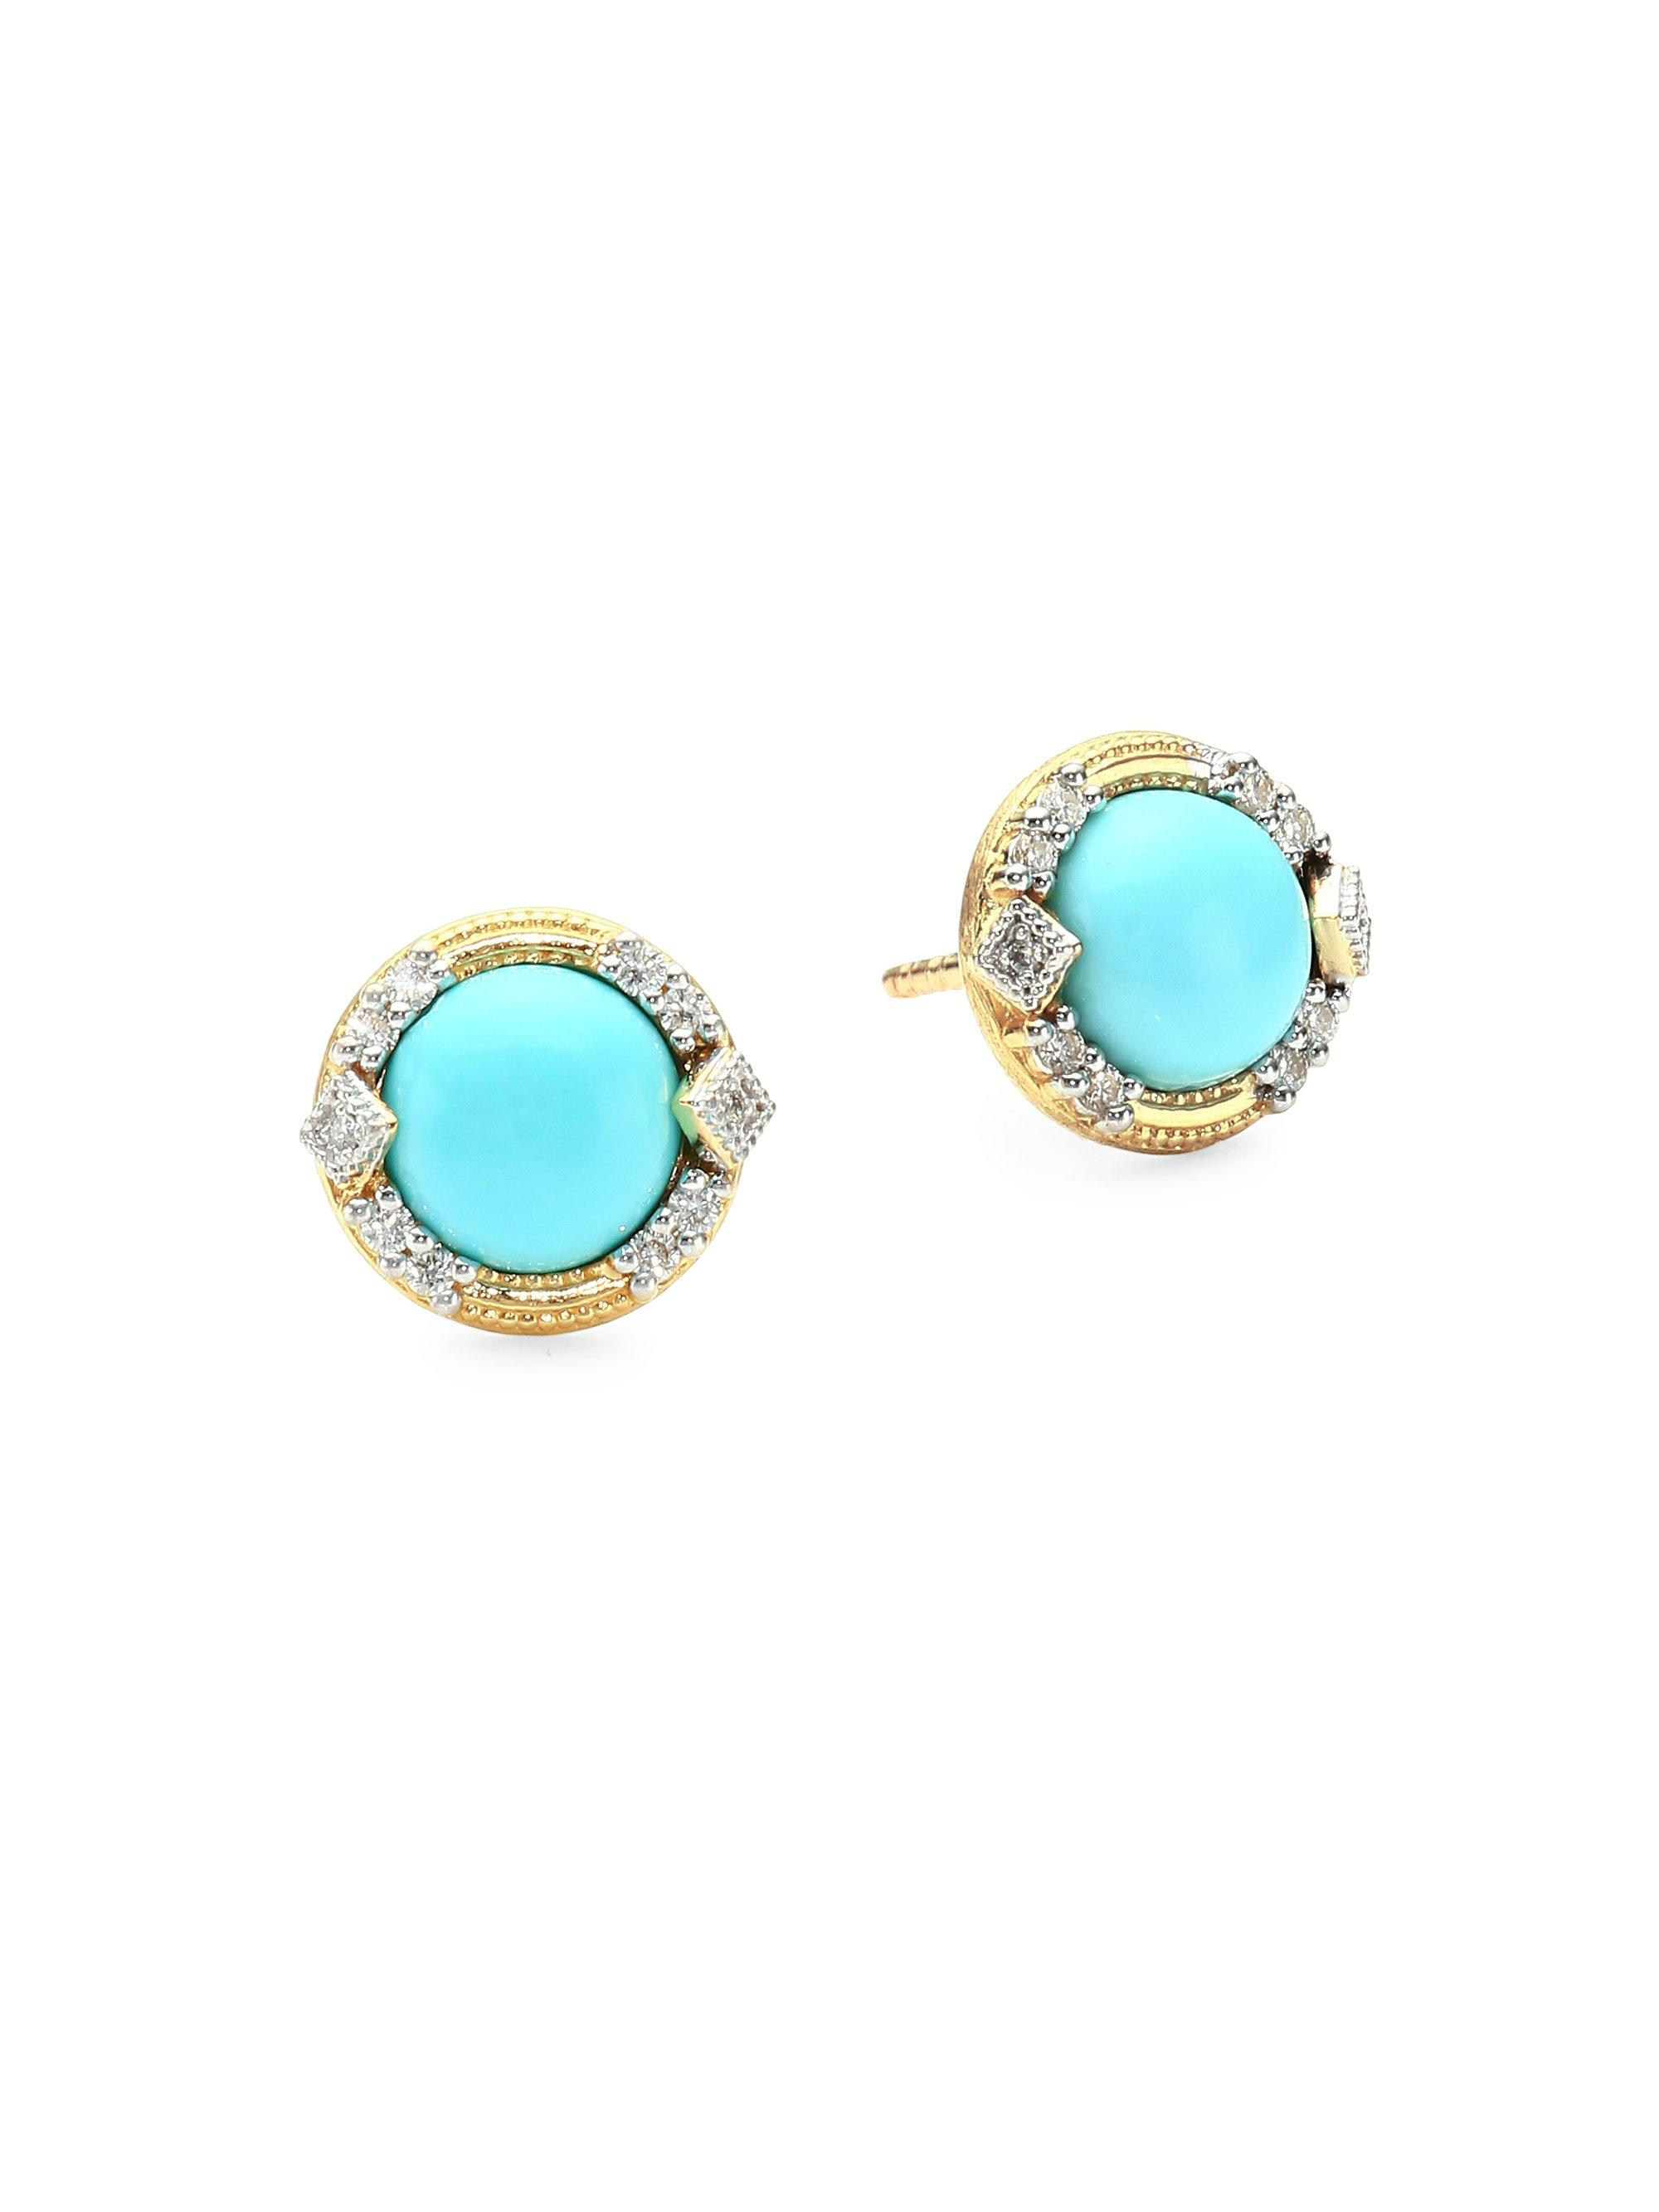 earrings zosia bonas stud jewellery turquoise silver teardrop oliver